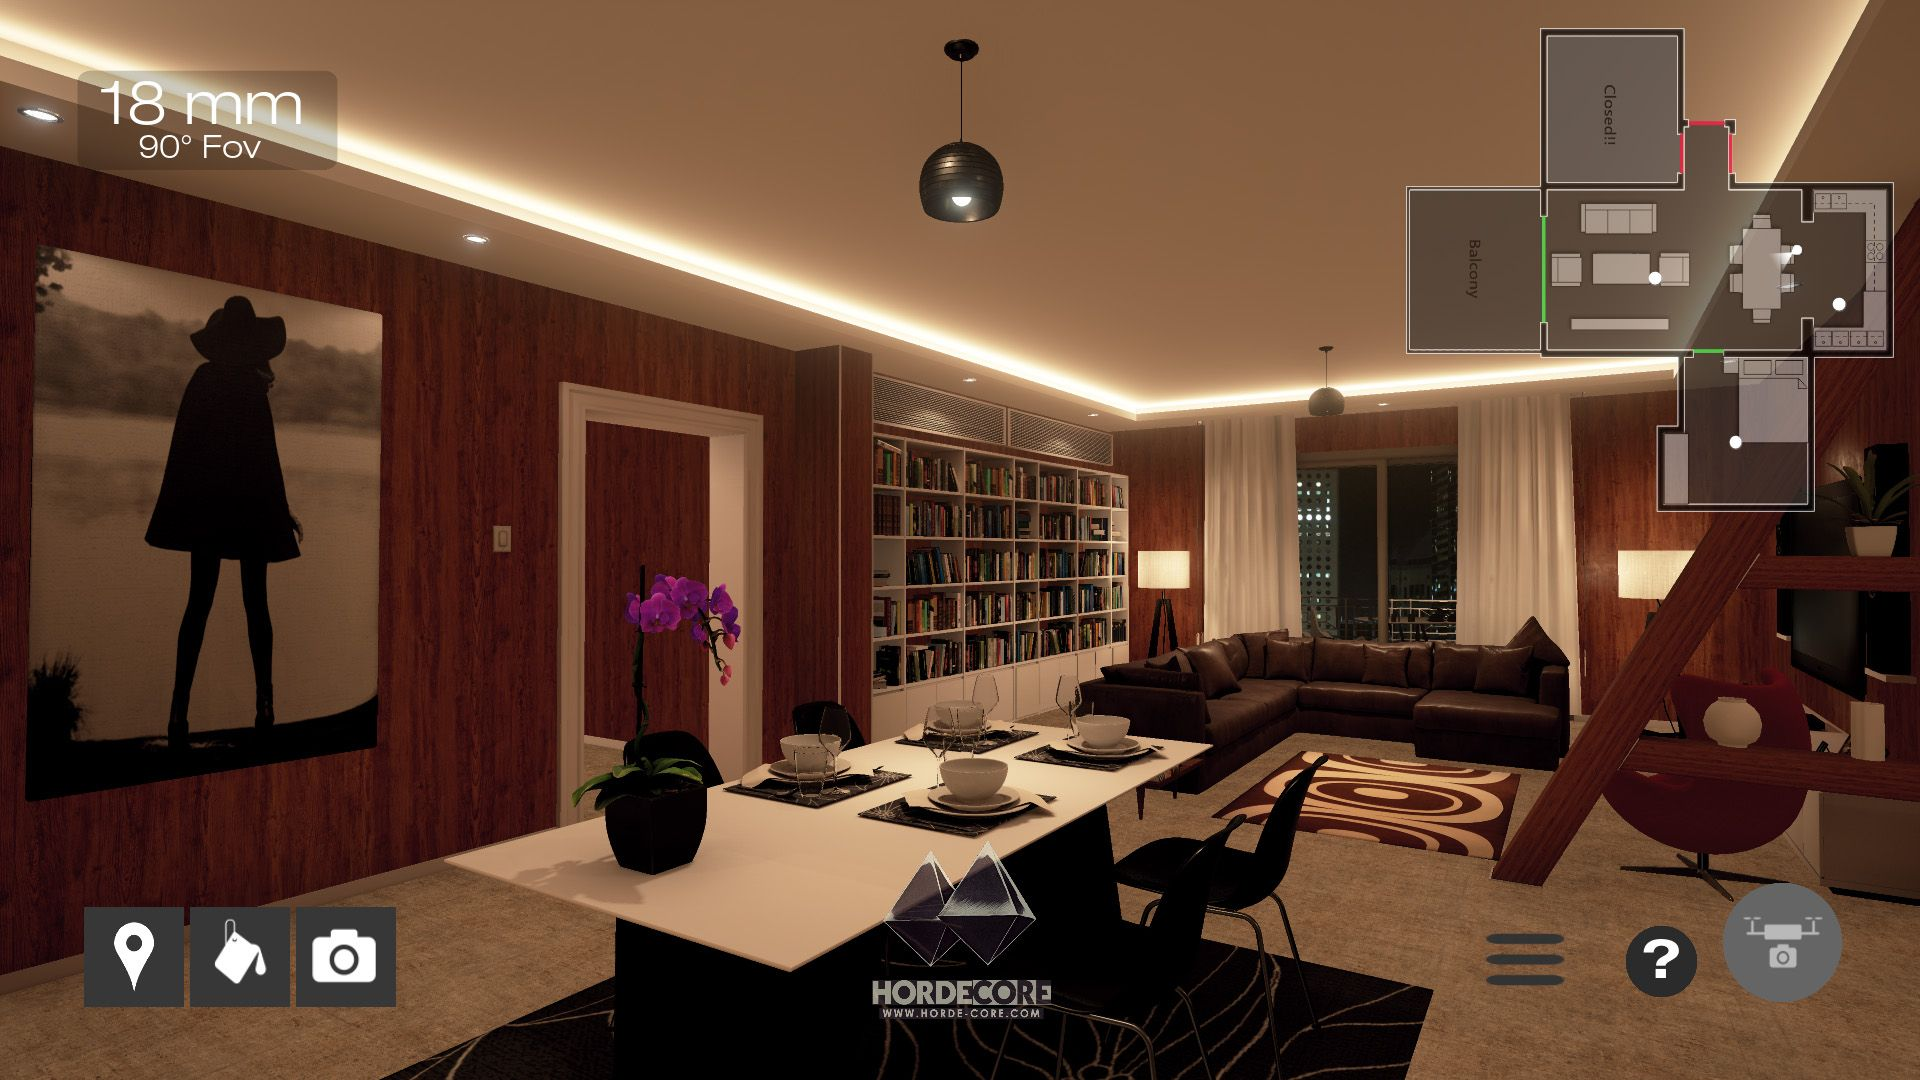 Pin by HordeCore on HordeCore | Unreal engine, Projects